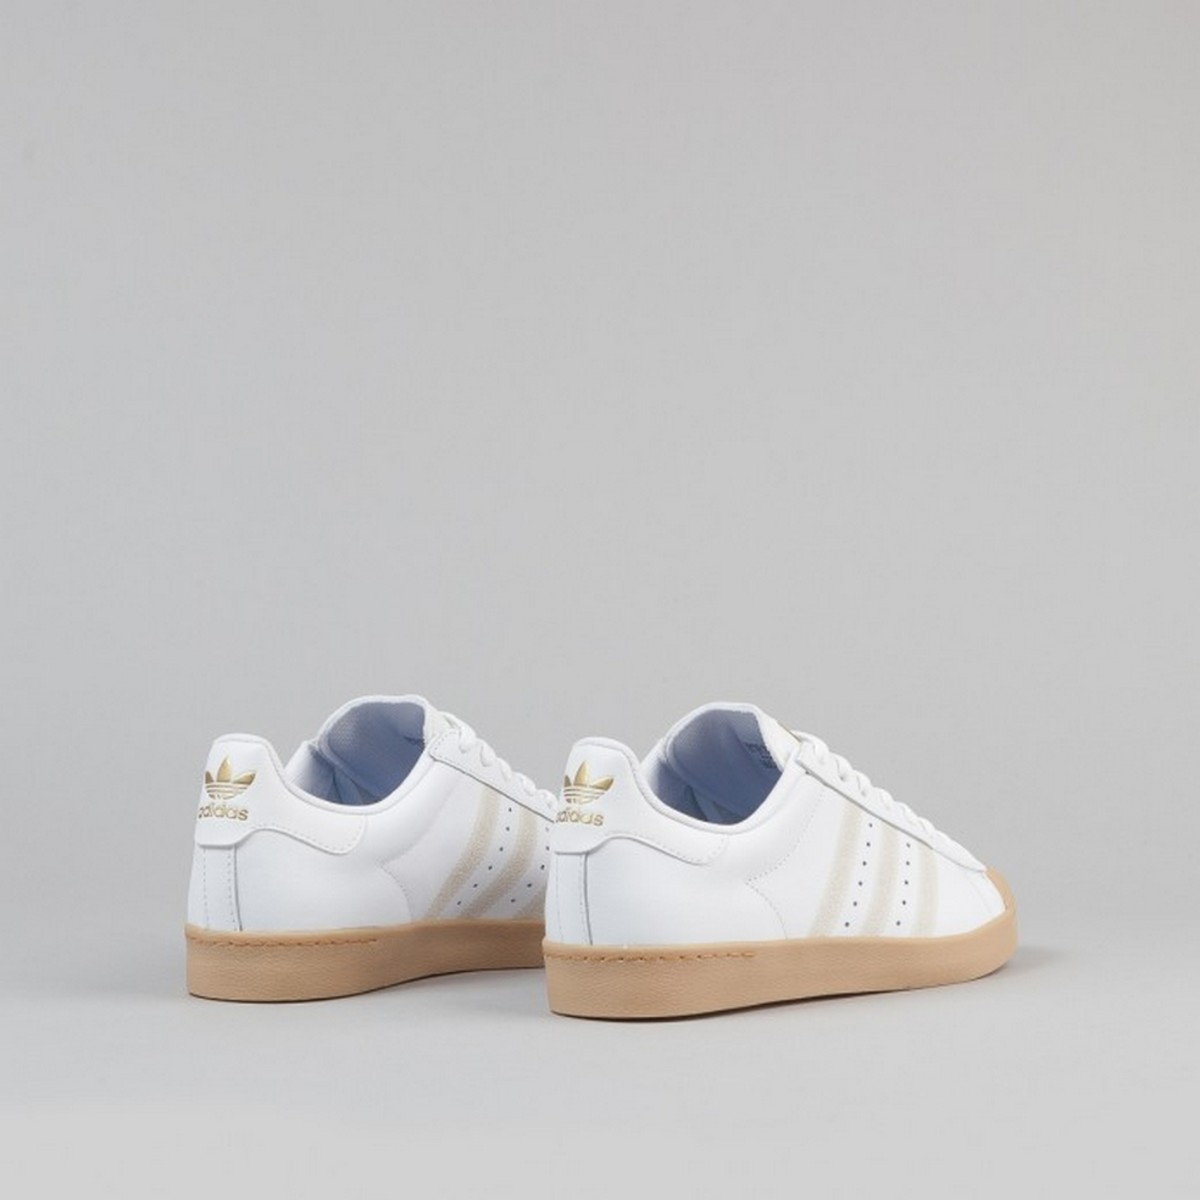 the-adidas-originals-superstar-vulc-arrives-in-white-leather-with-gum-soles-8